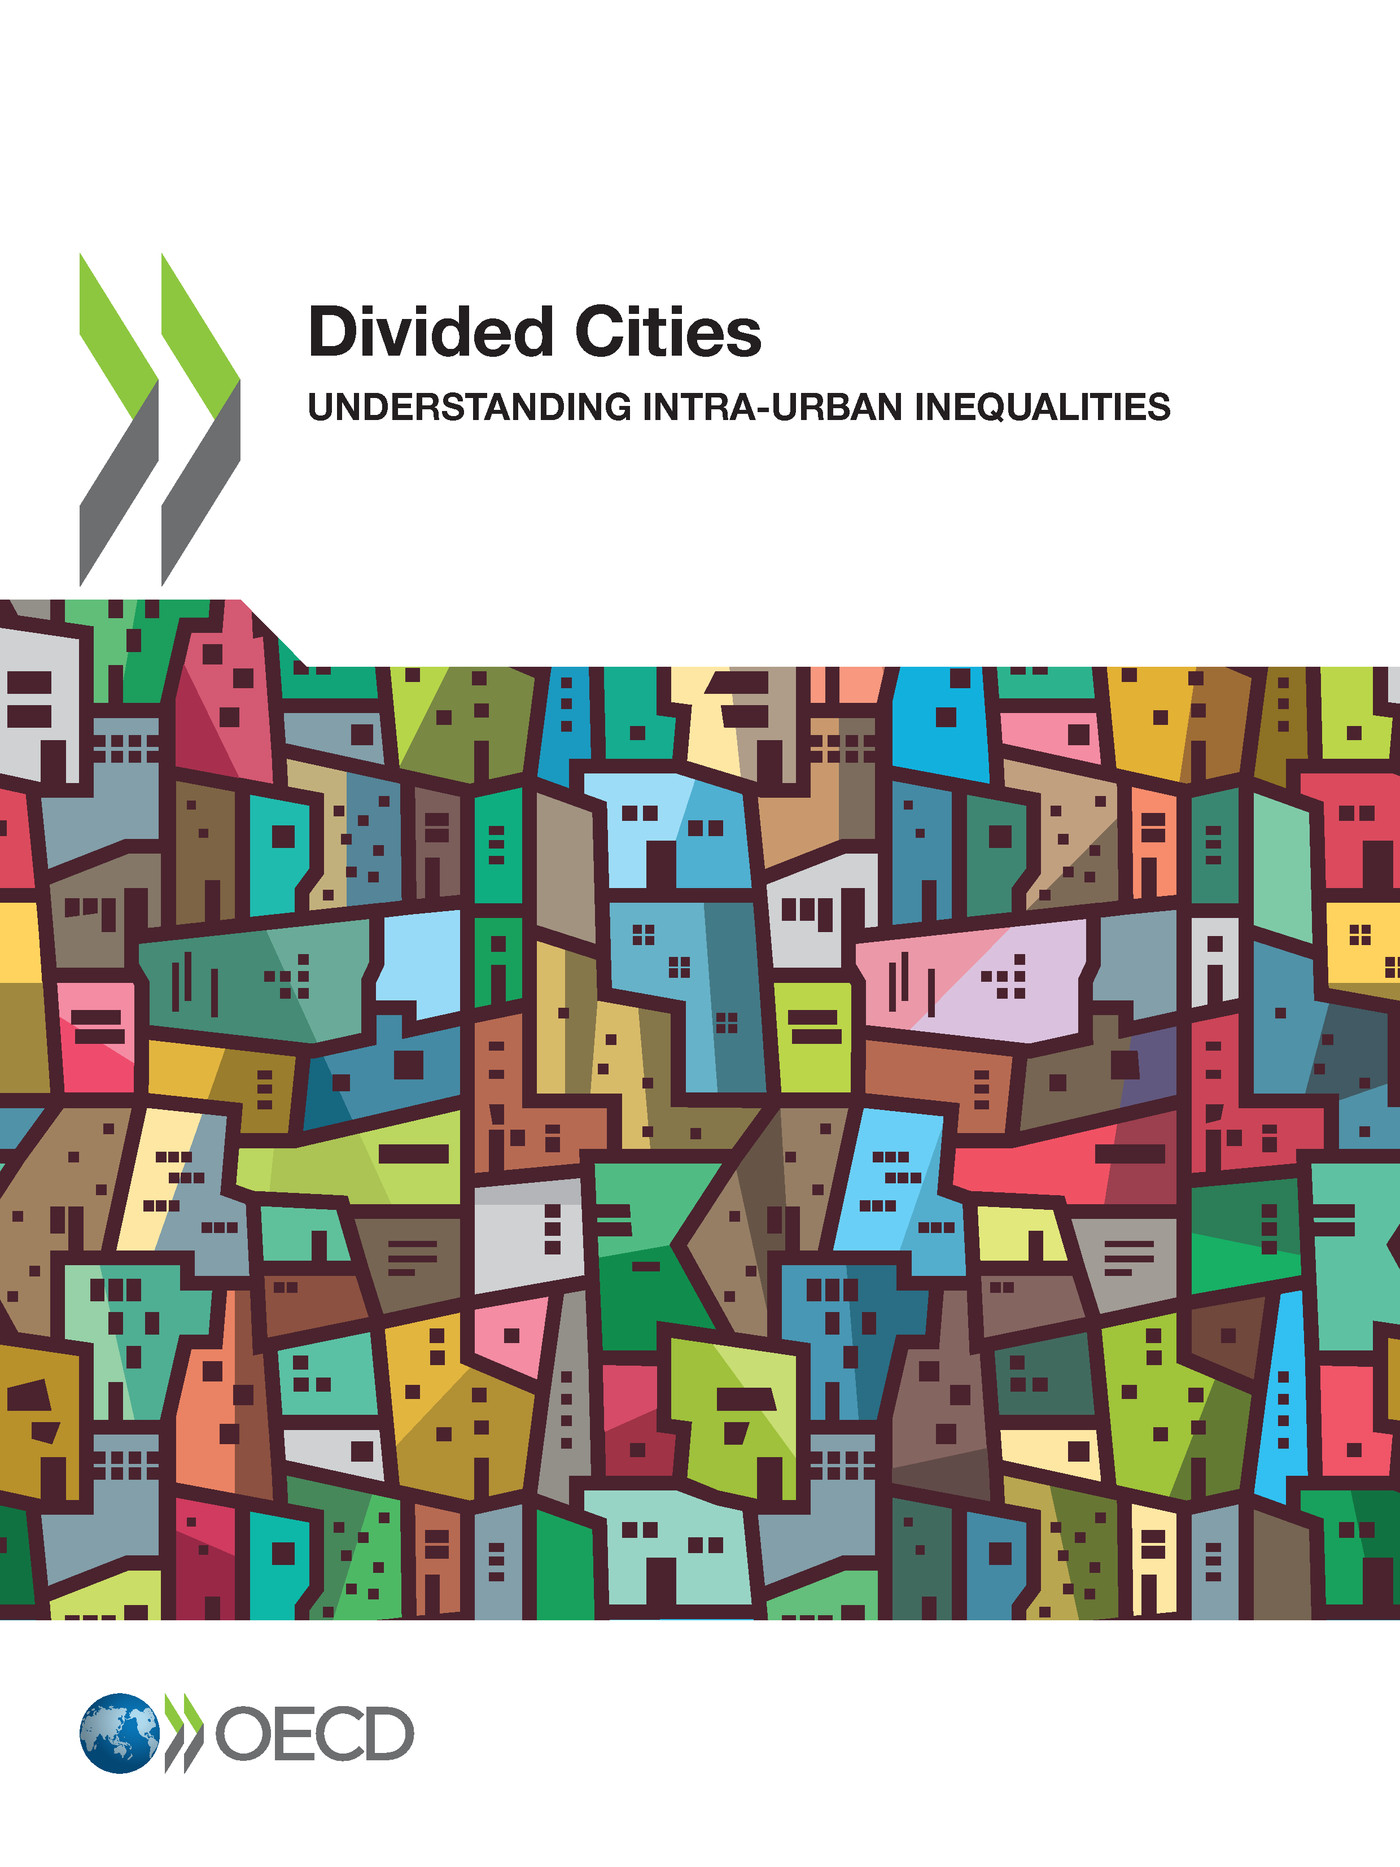 Divided Cities De  Collectif - OCDE / OECD